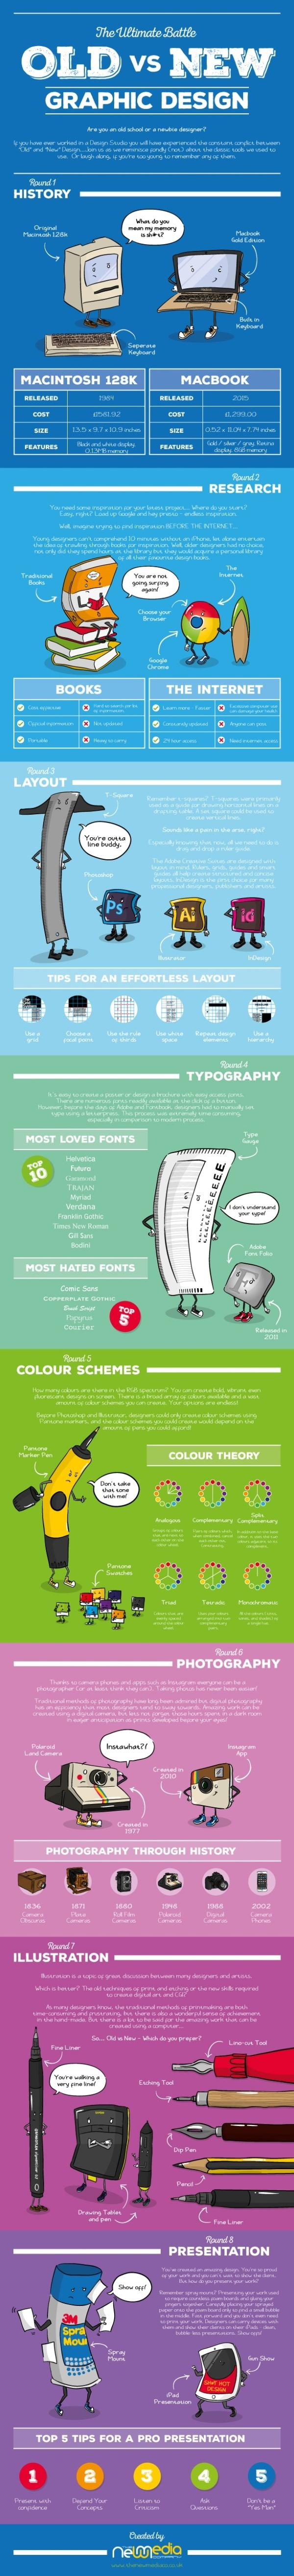 Old Vs. New Graphic Design